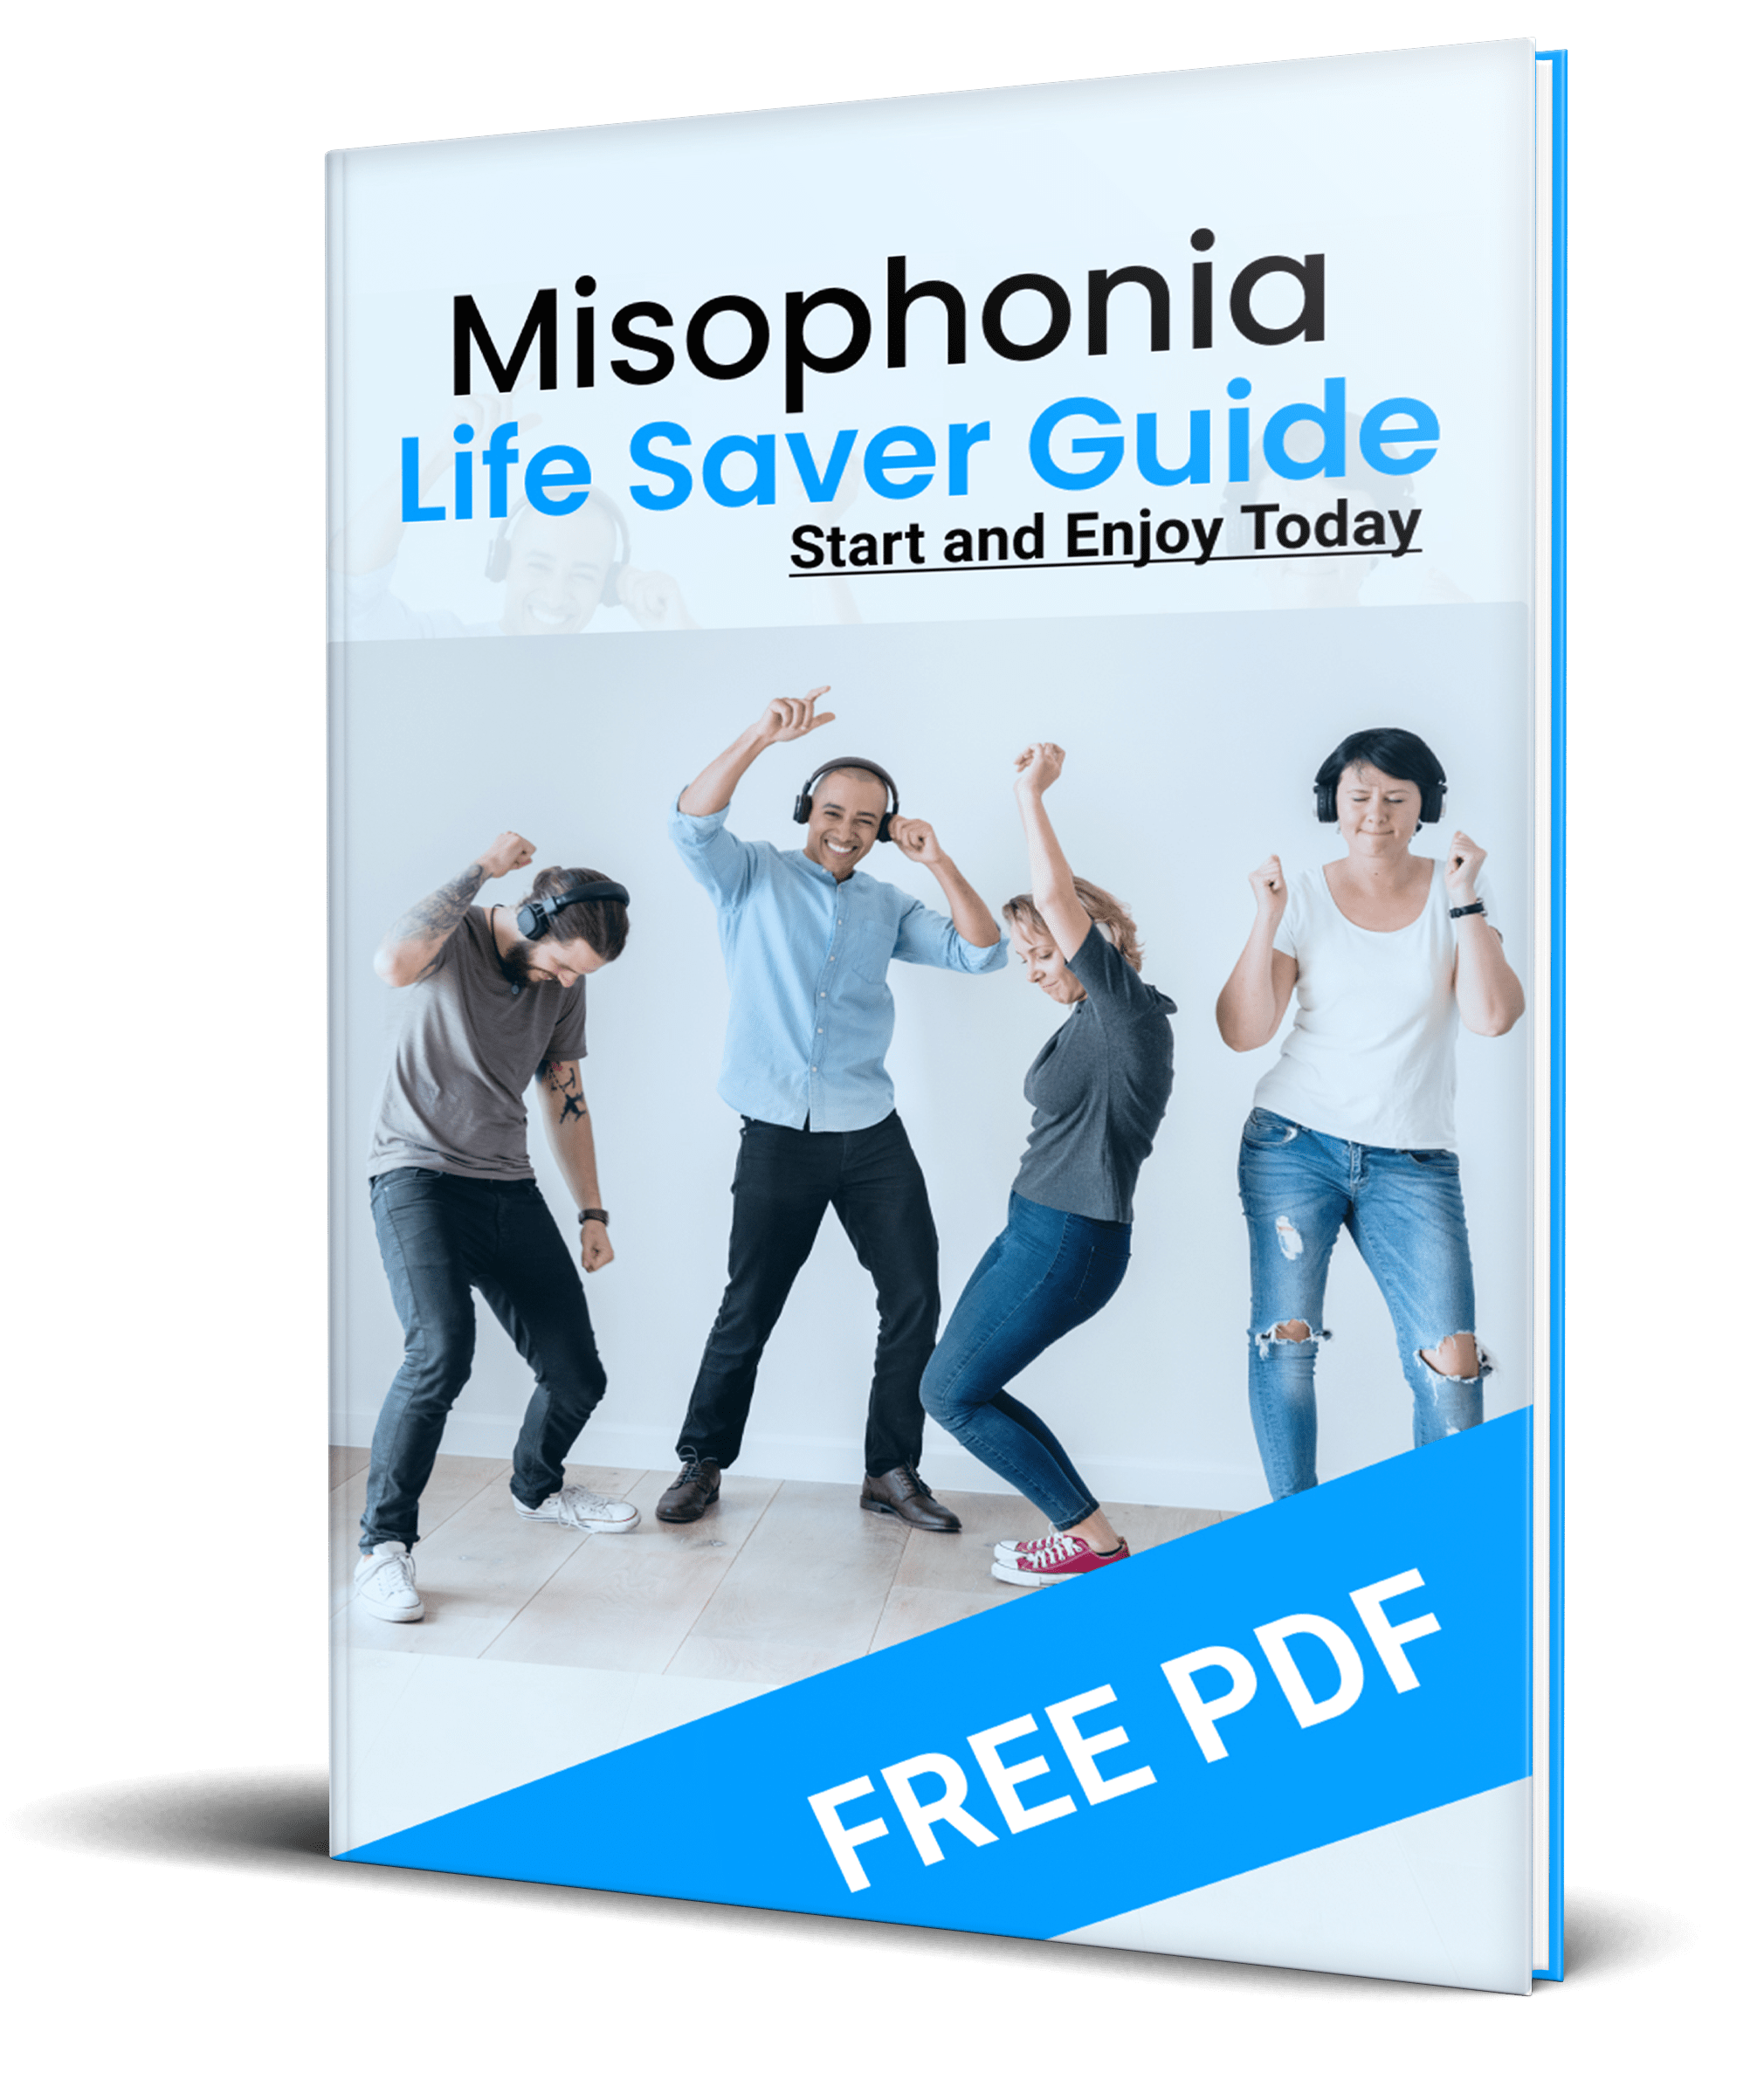 Life Safe PDF Guide From Benfeel For Misophone -min